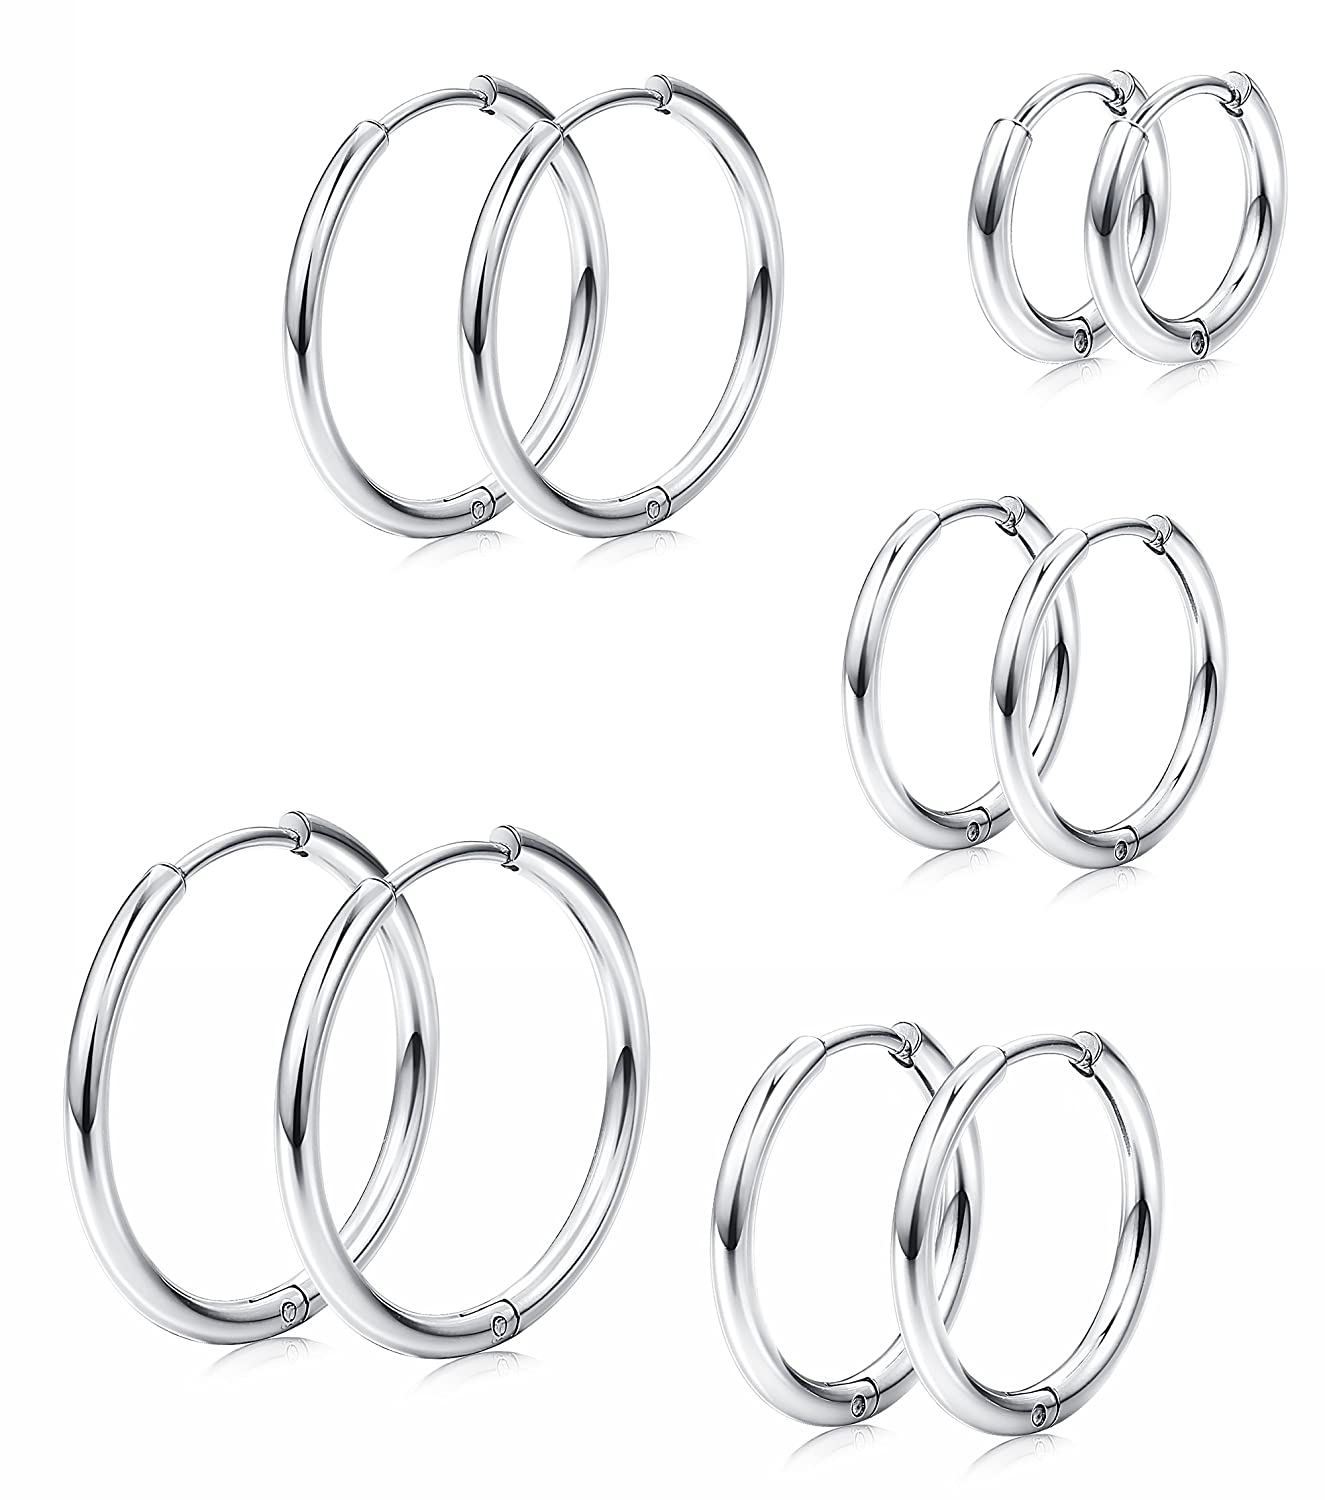 Milacolato 5 Pairs Stainless Steel Basic Small Large Endless Hoop Earrings for Mens Womens Nose Tongue Body Ring Cartilage Piercing 8-16mm B07FMF4ZCK_US